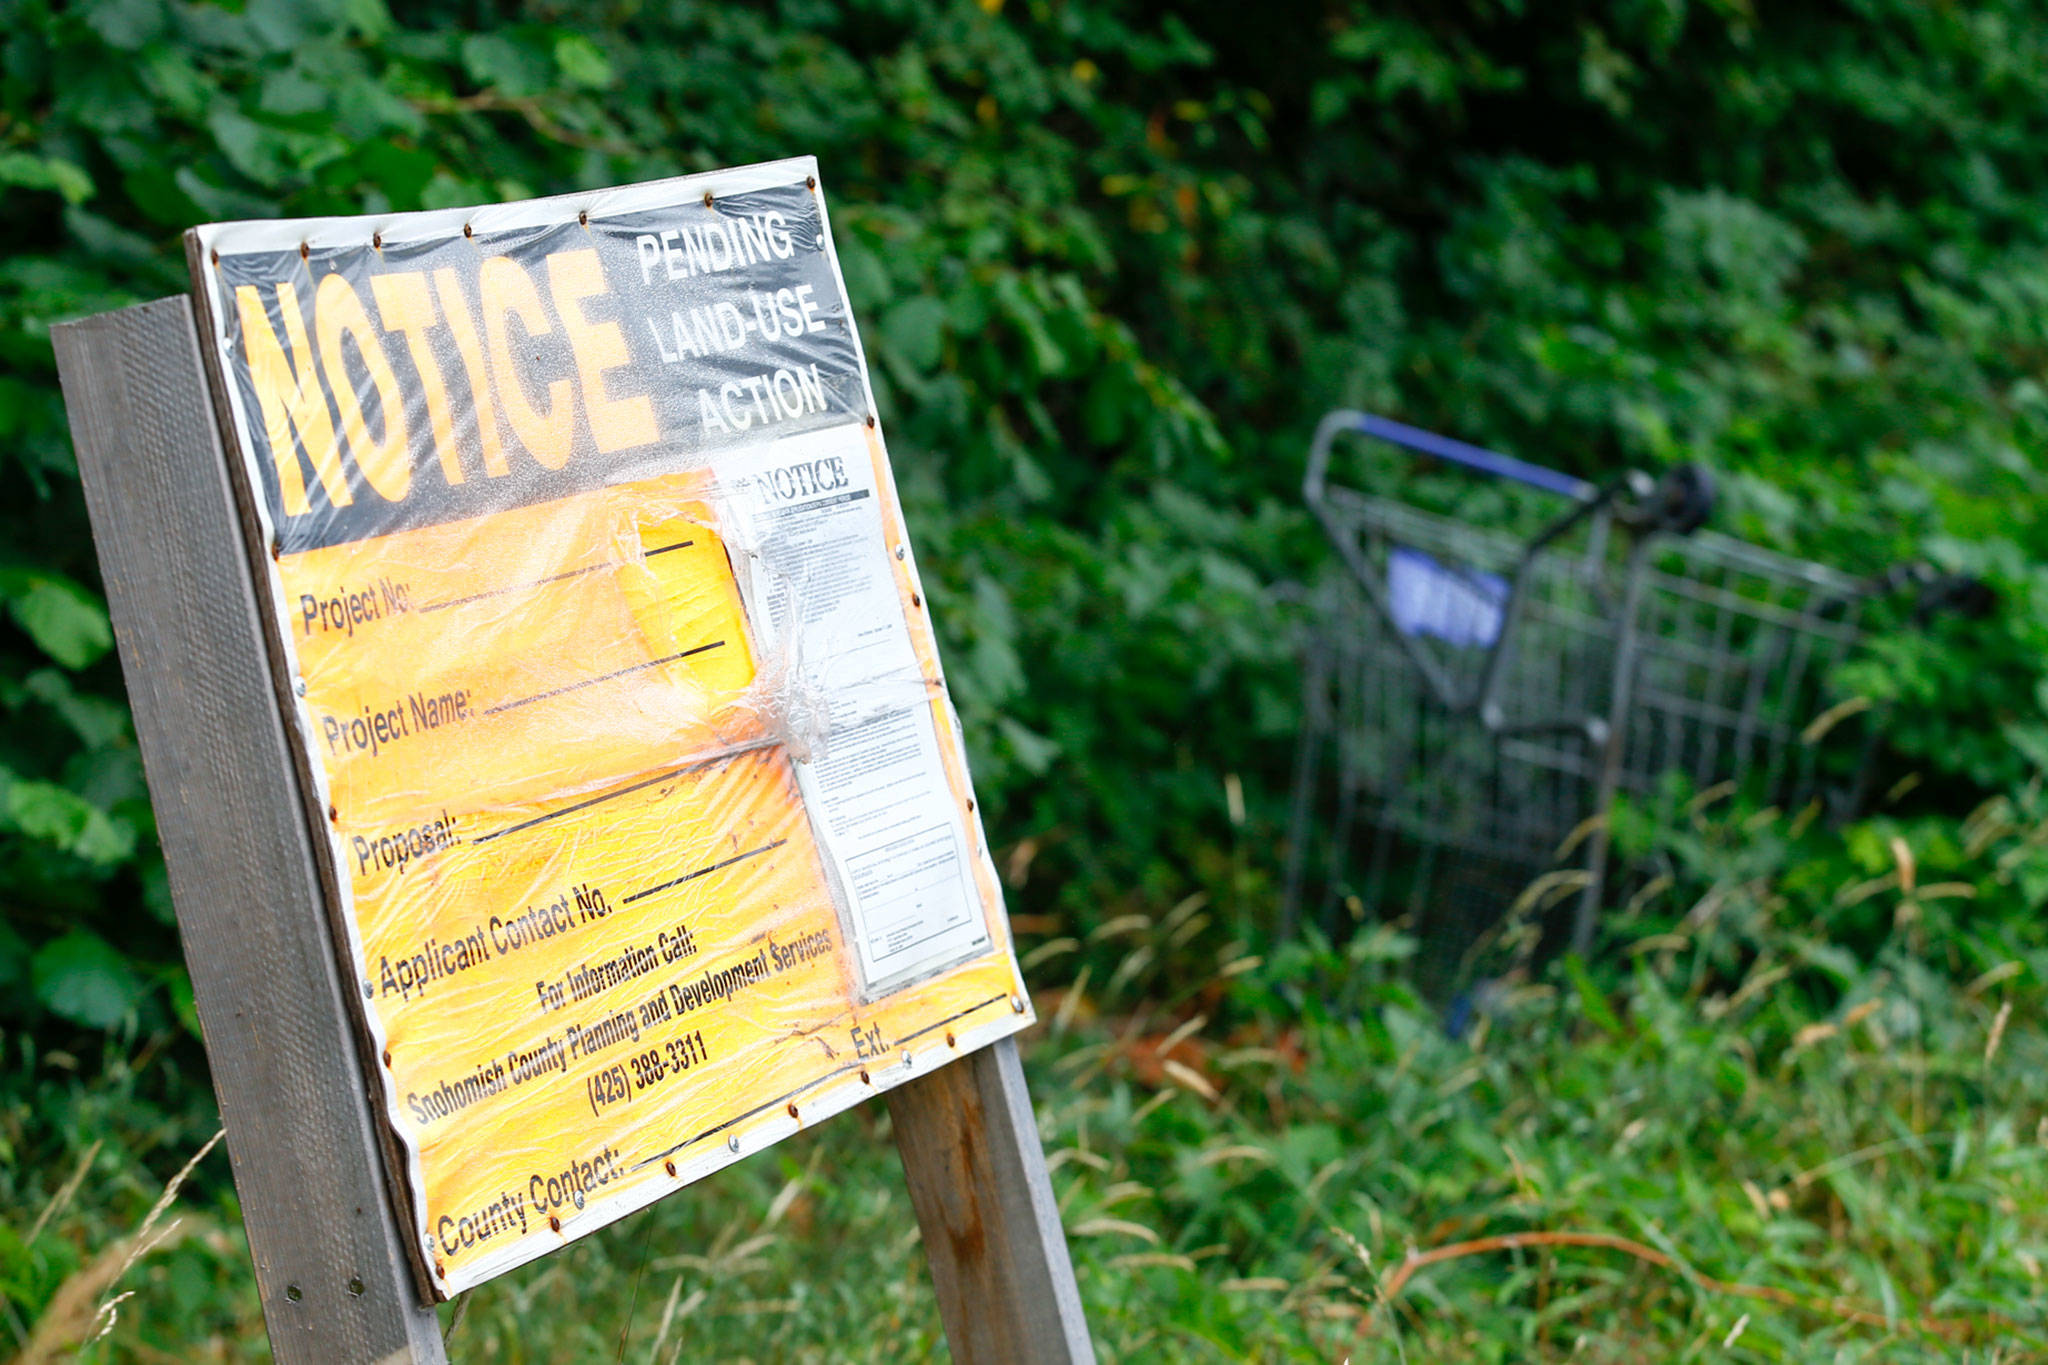 The greenbelt where the McCollum Park John Doe was found in a shallow grave is under notice for development. (Kevin Clark / The Herald)